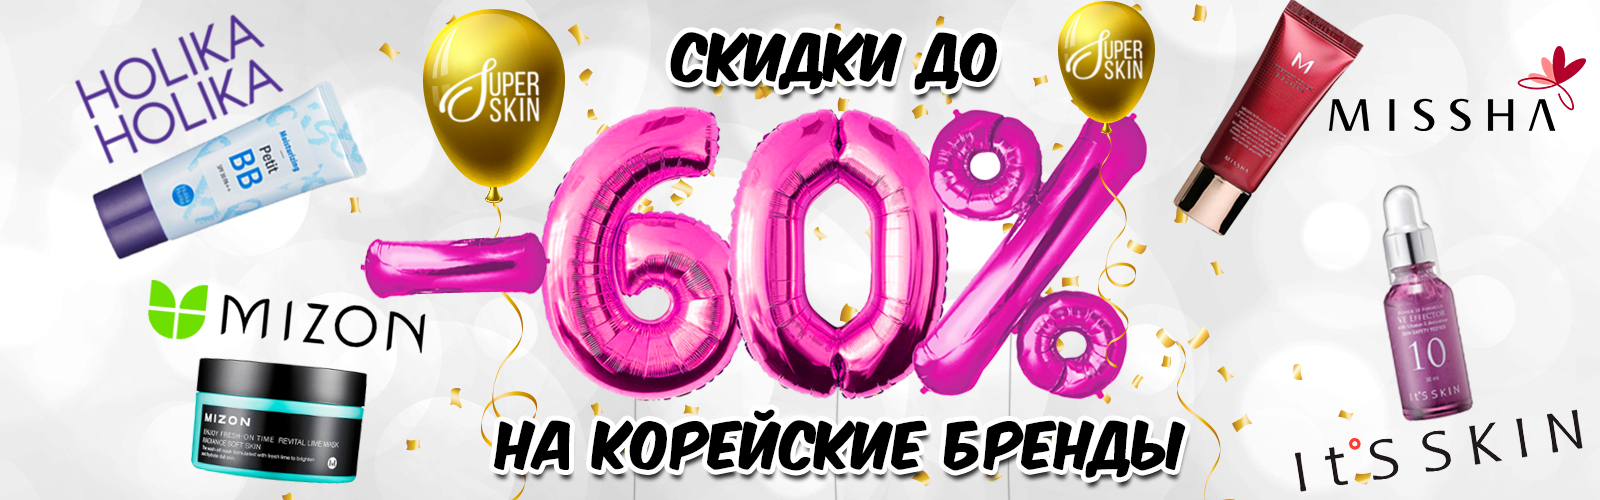 Скидки до 60% Holika Holika, Mizon, It's Skin, Missha